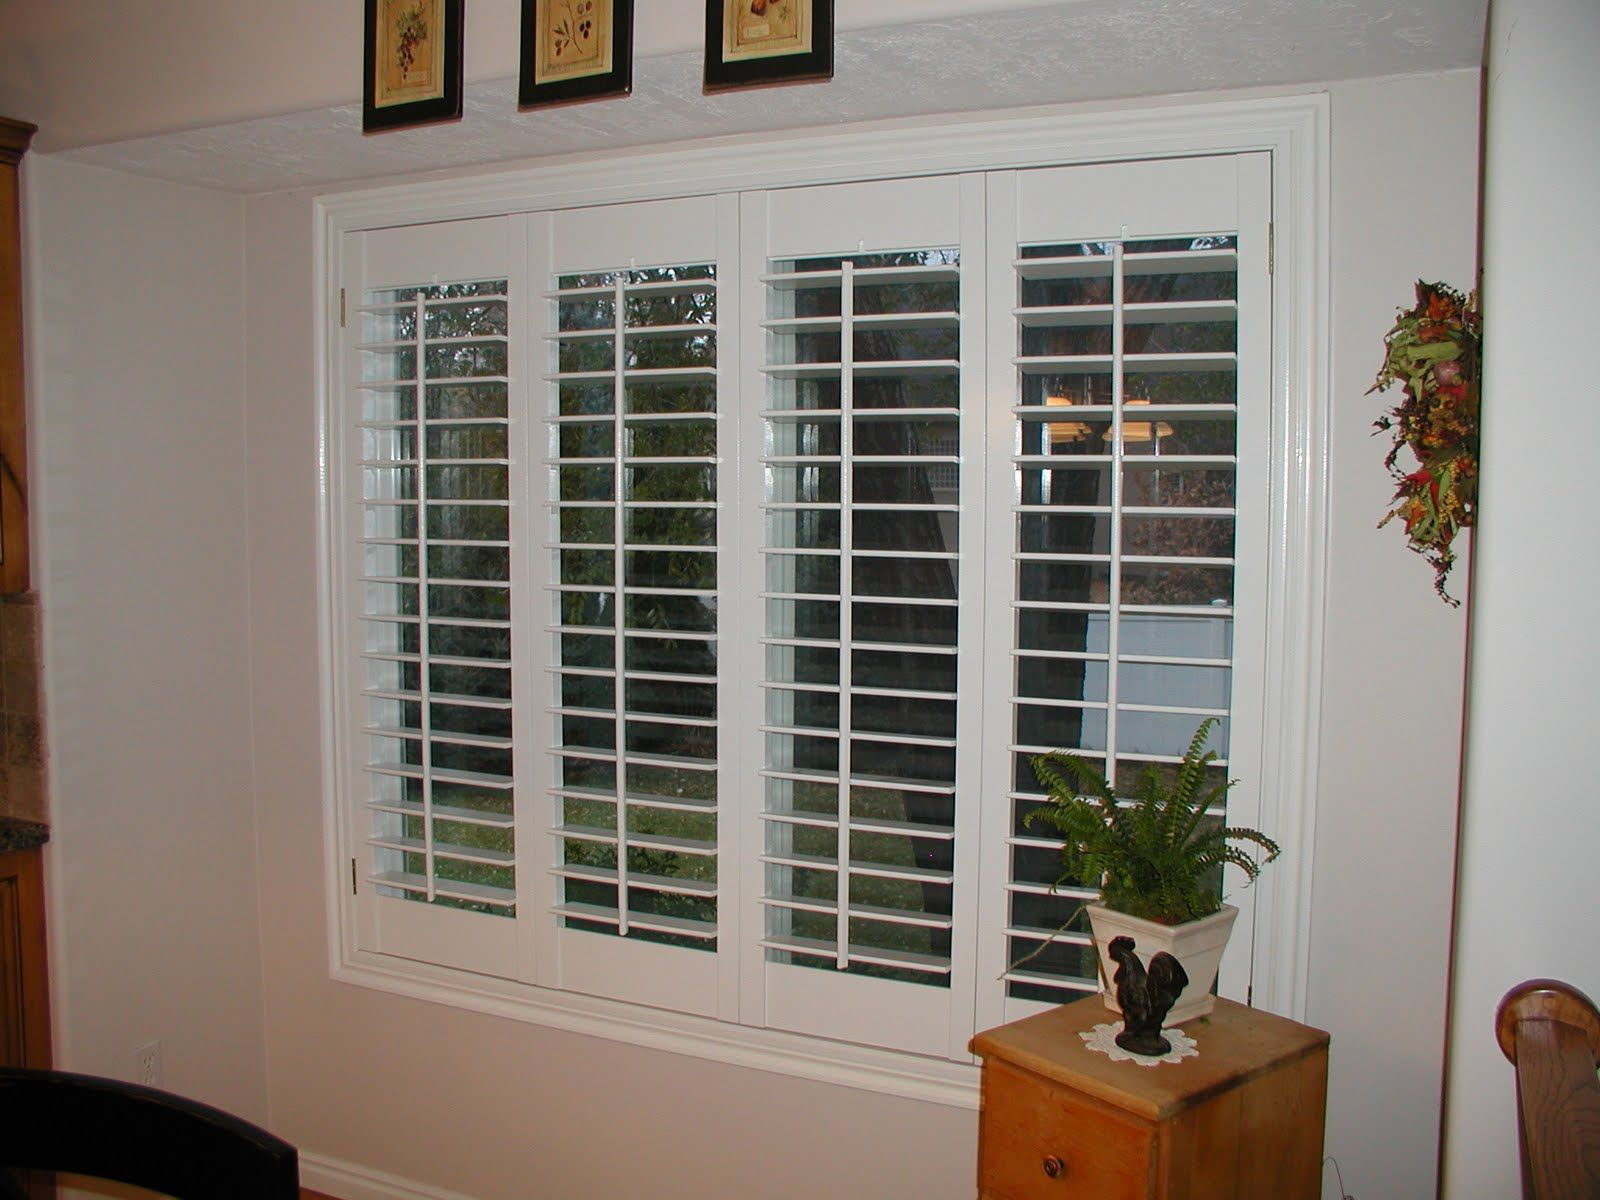 Superbe Plantation Shutters | Bi Fold Plantation Shutters Are Interiorwooden/vinyl  Shutters That Are .